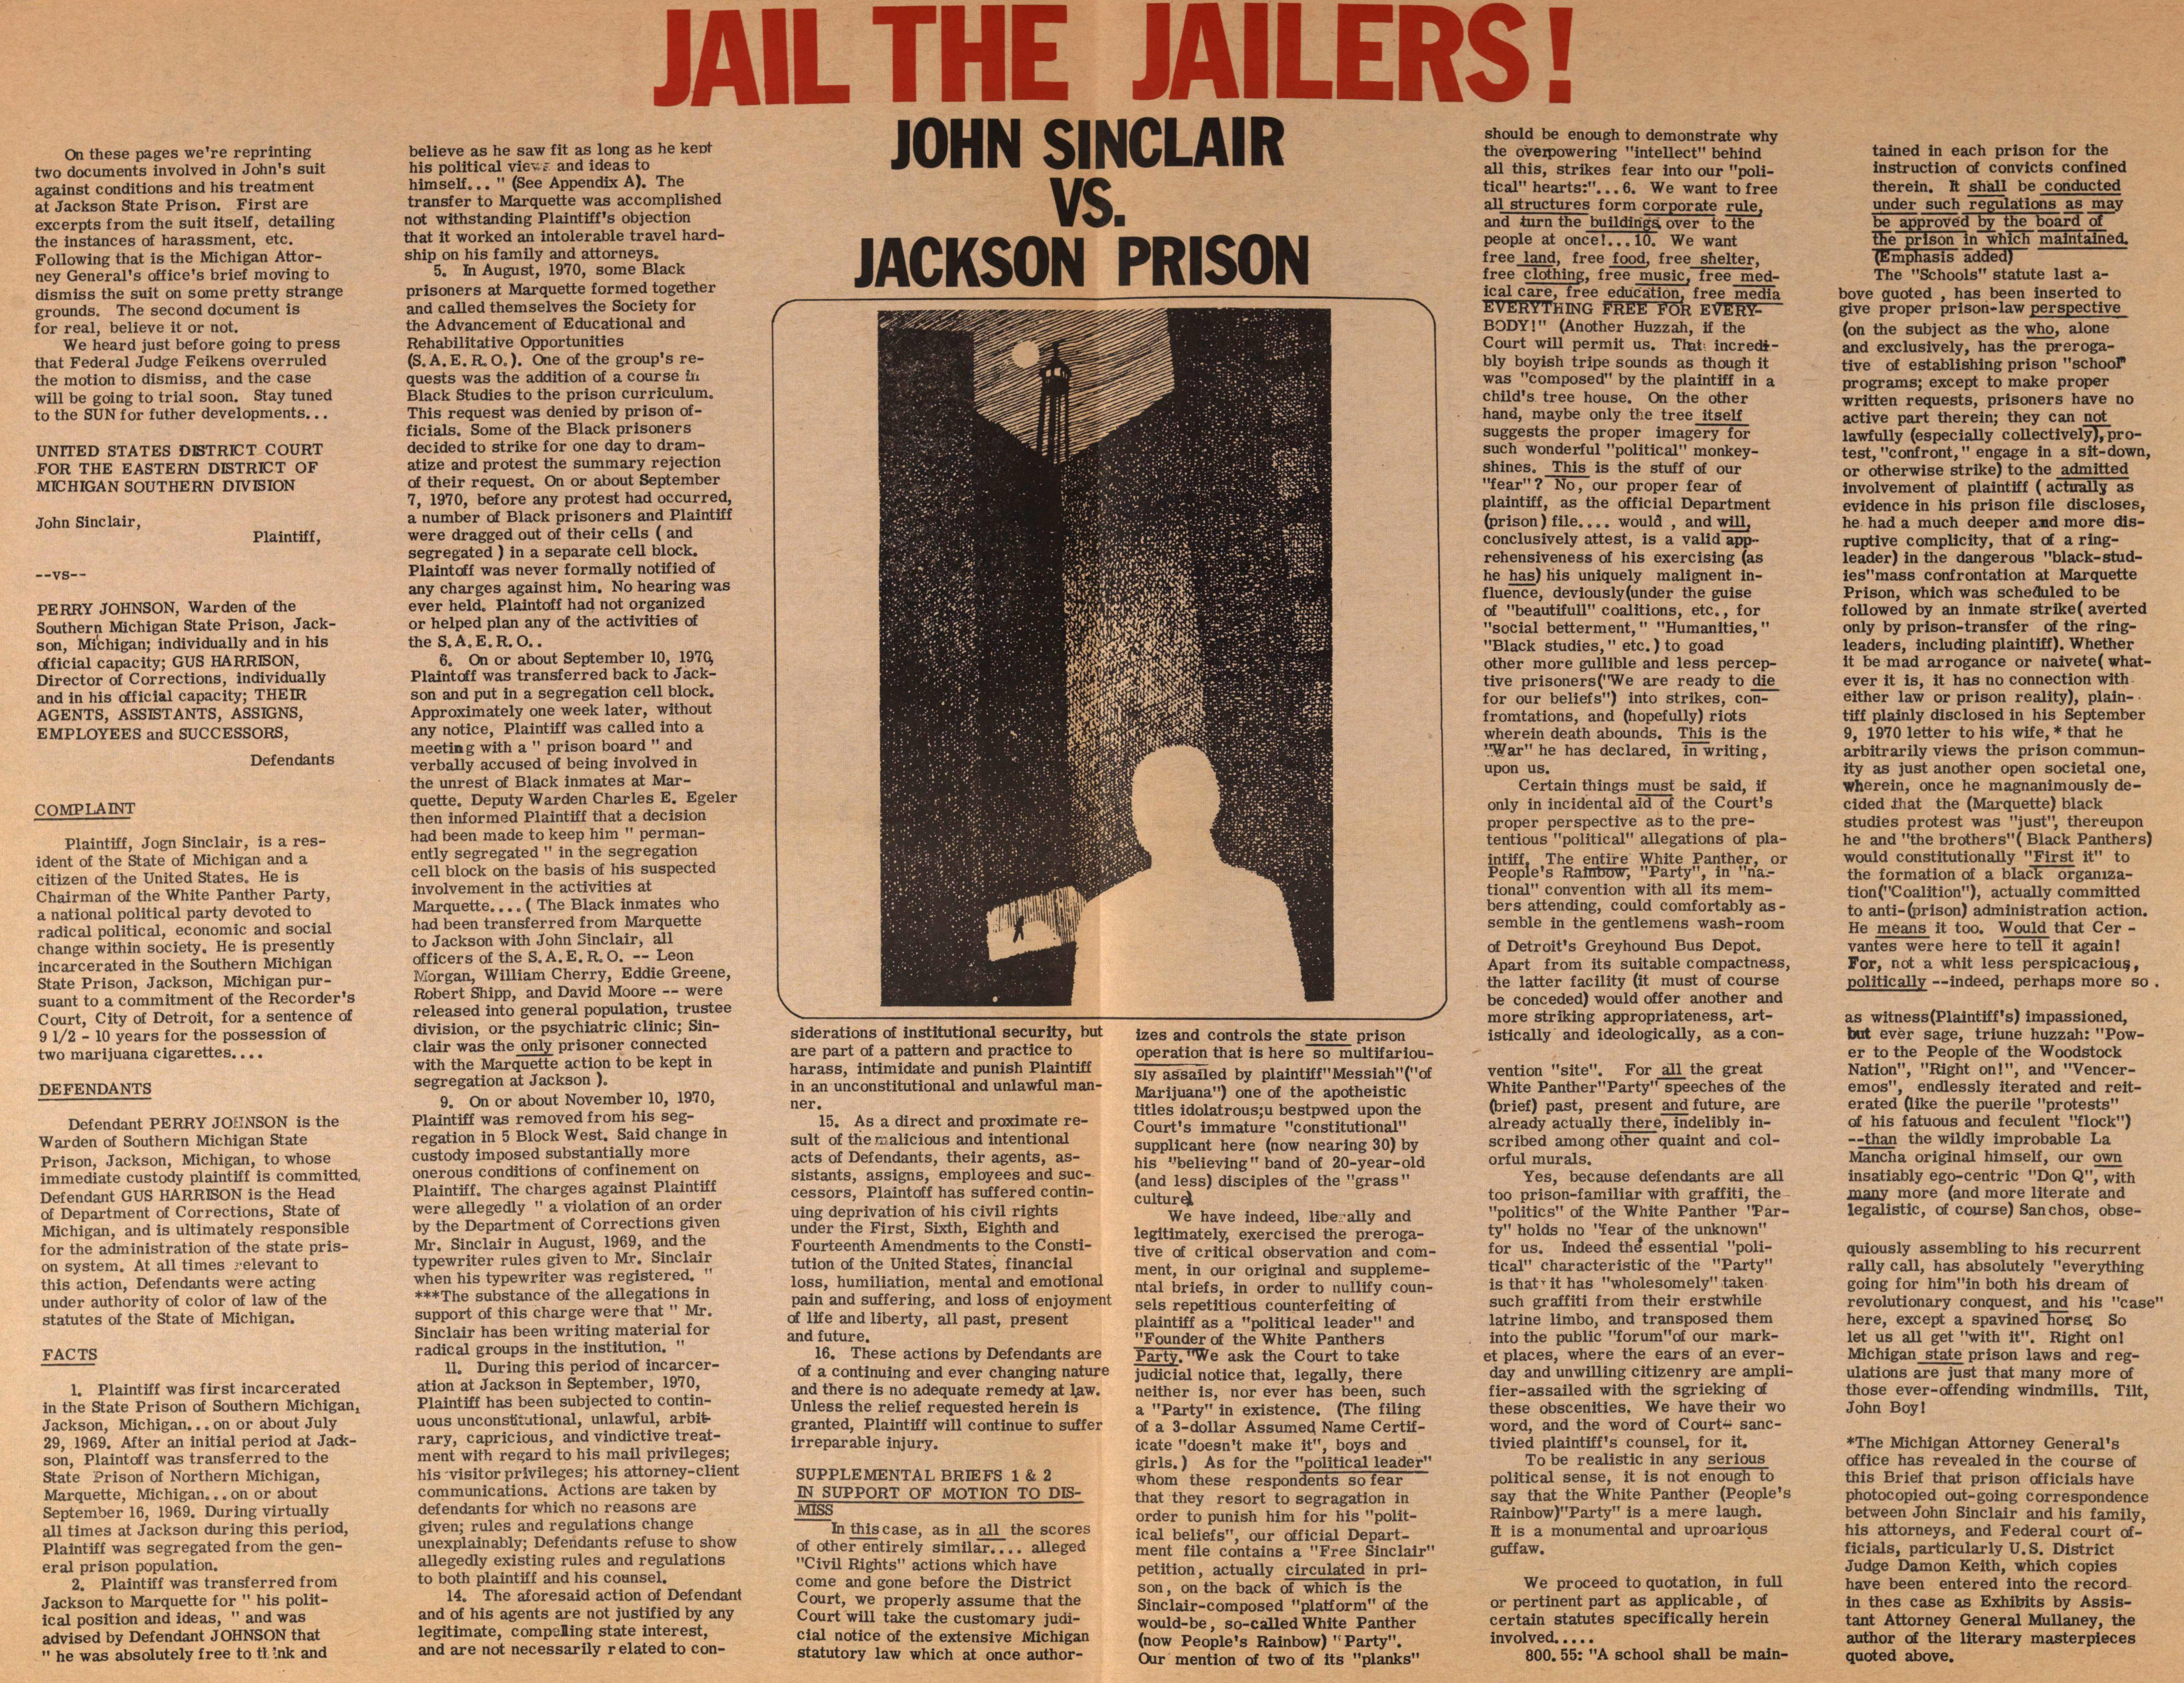 Jail The Jailers! image